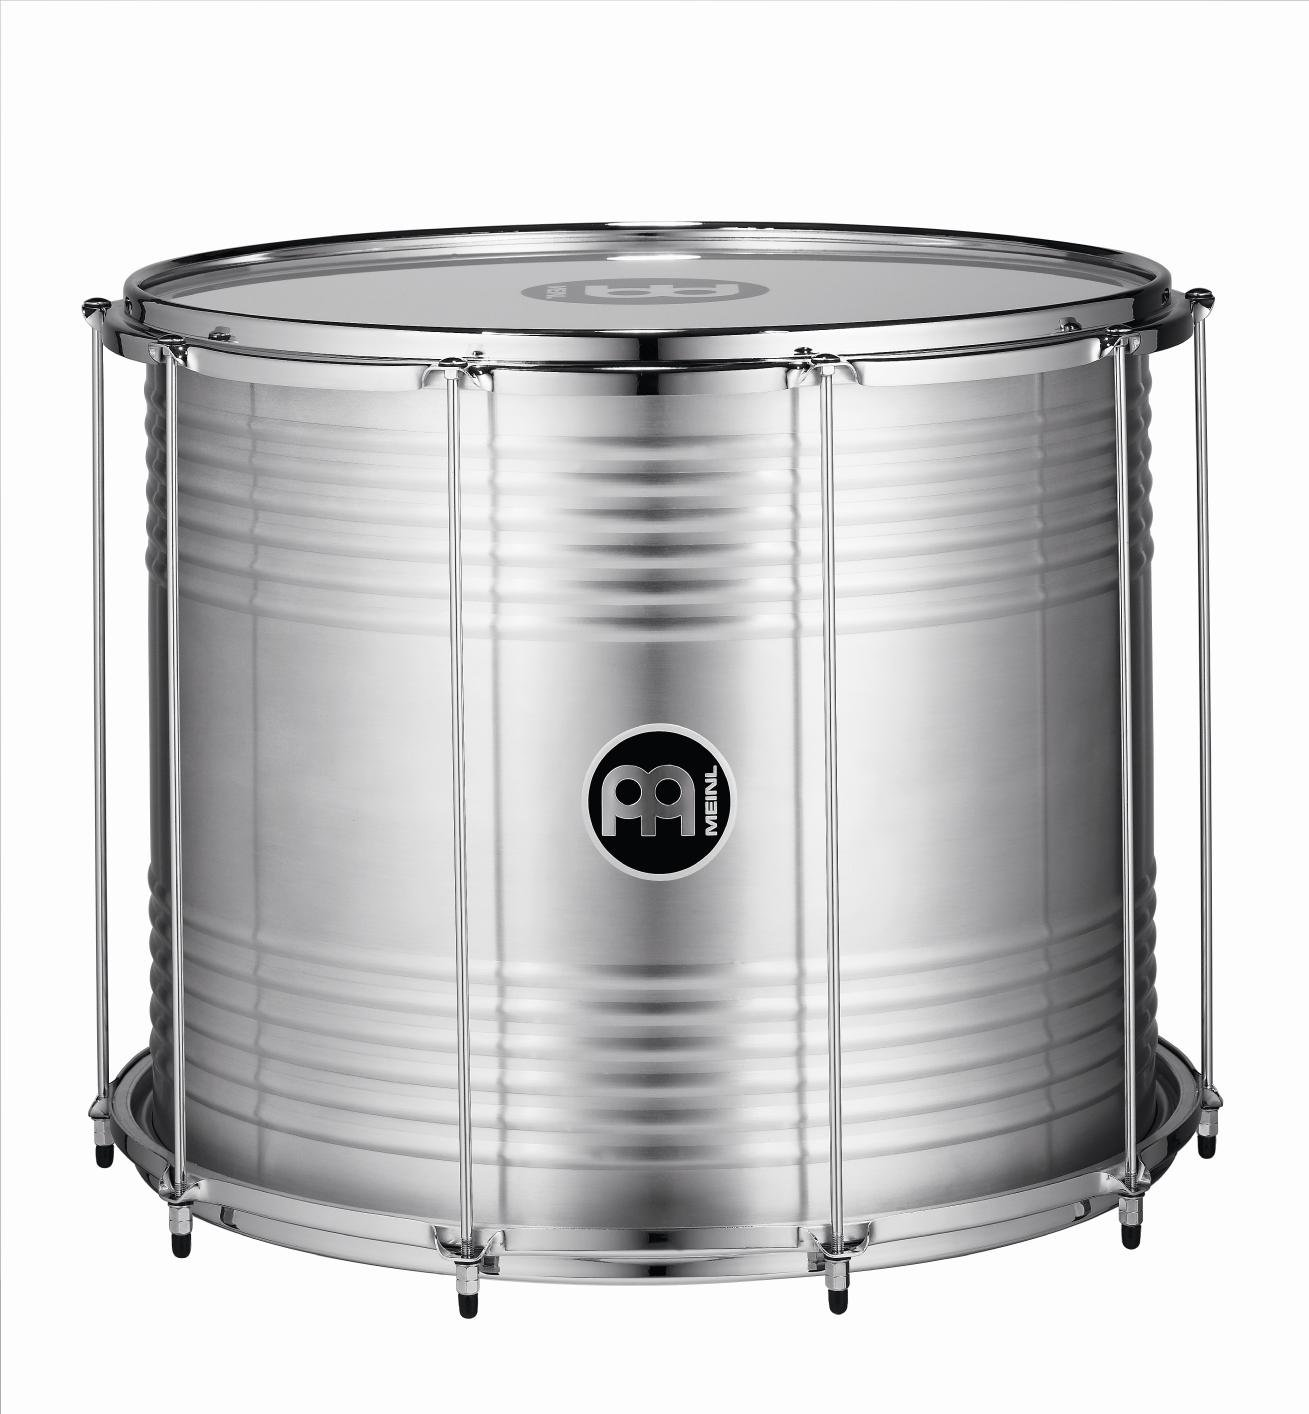 Meinl Percussion 20'' Bahia Surdo with Aluminum Shell - NOT MADE IN CHINA - Equipped with Napa and Synthetic Heads, 2-YEAR WARRANTY (SUB20) by Meinl Percussion (Image #1)